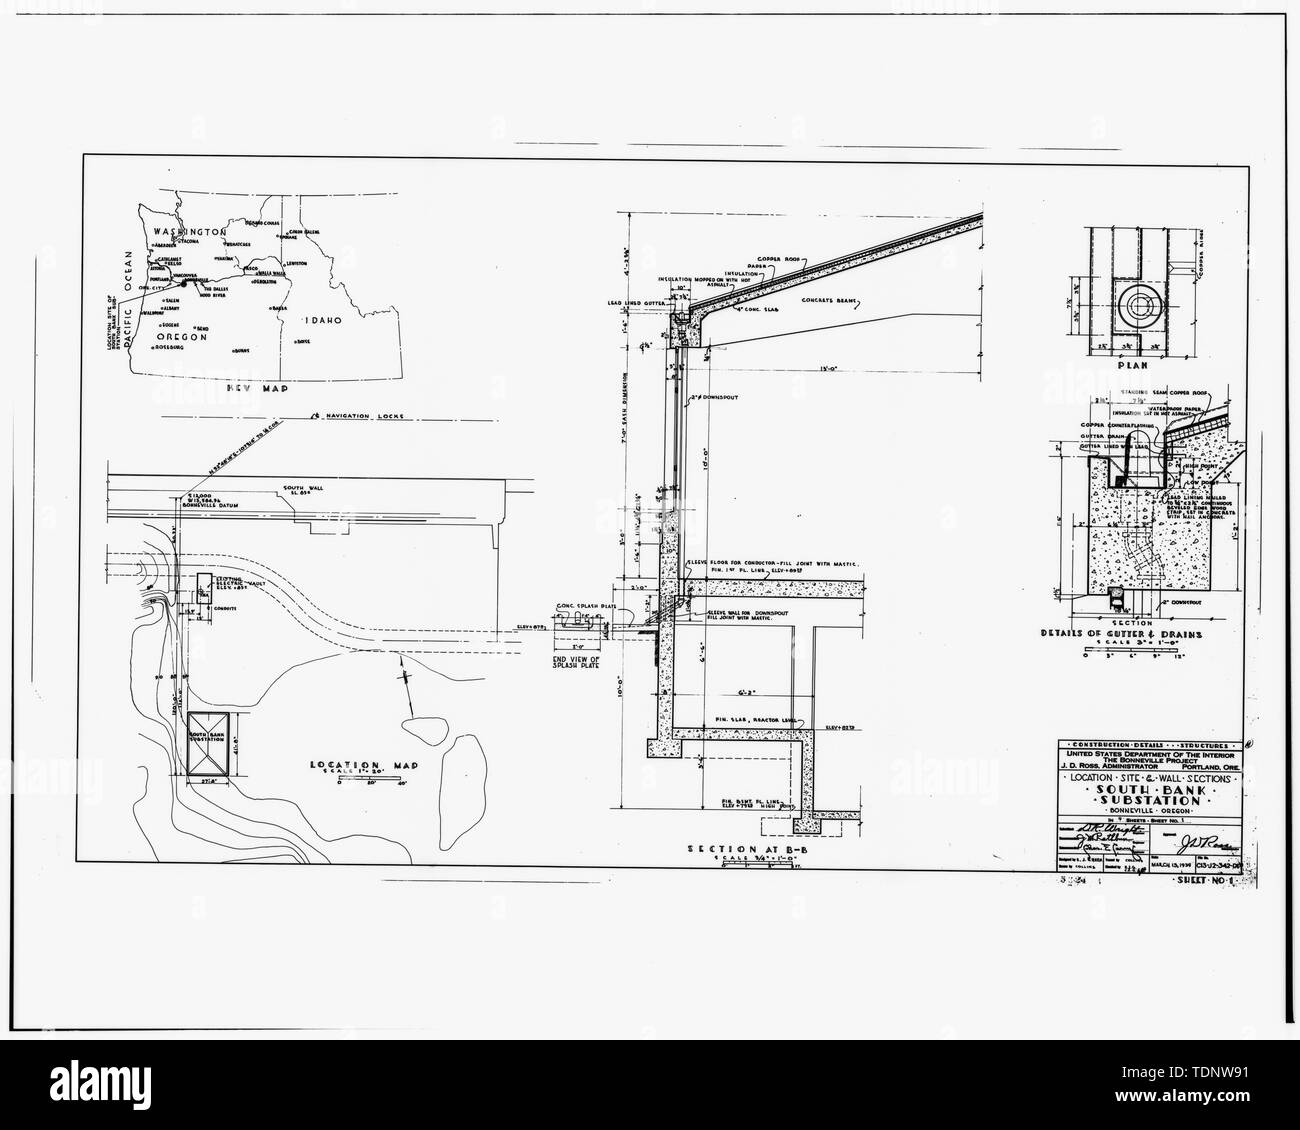 Photocopy Of Location Site And Wall Sections Drawing From The Bonneville Power Administration Engineering Vault Portland Oregon Drawing C13 J2 342 D1 Sheet 1 13 March 1939 Bonneville Power Administration South Bank Substation I 84